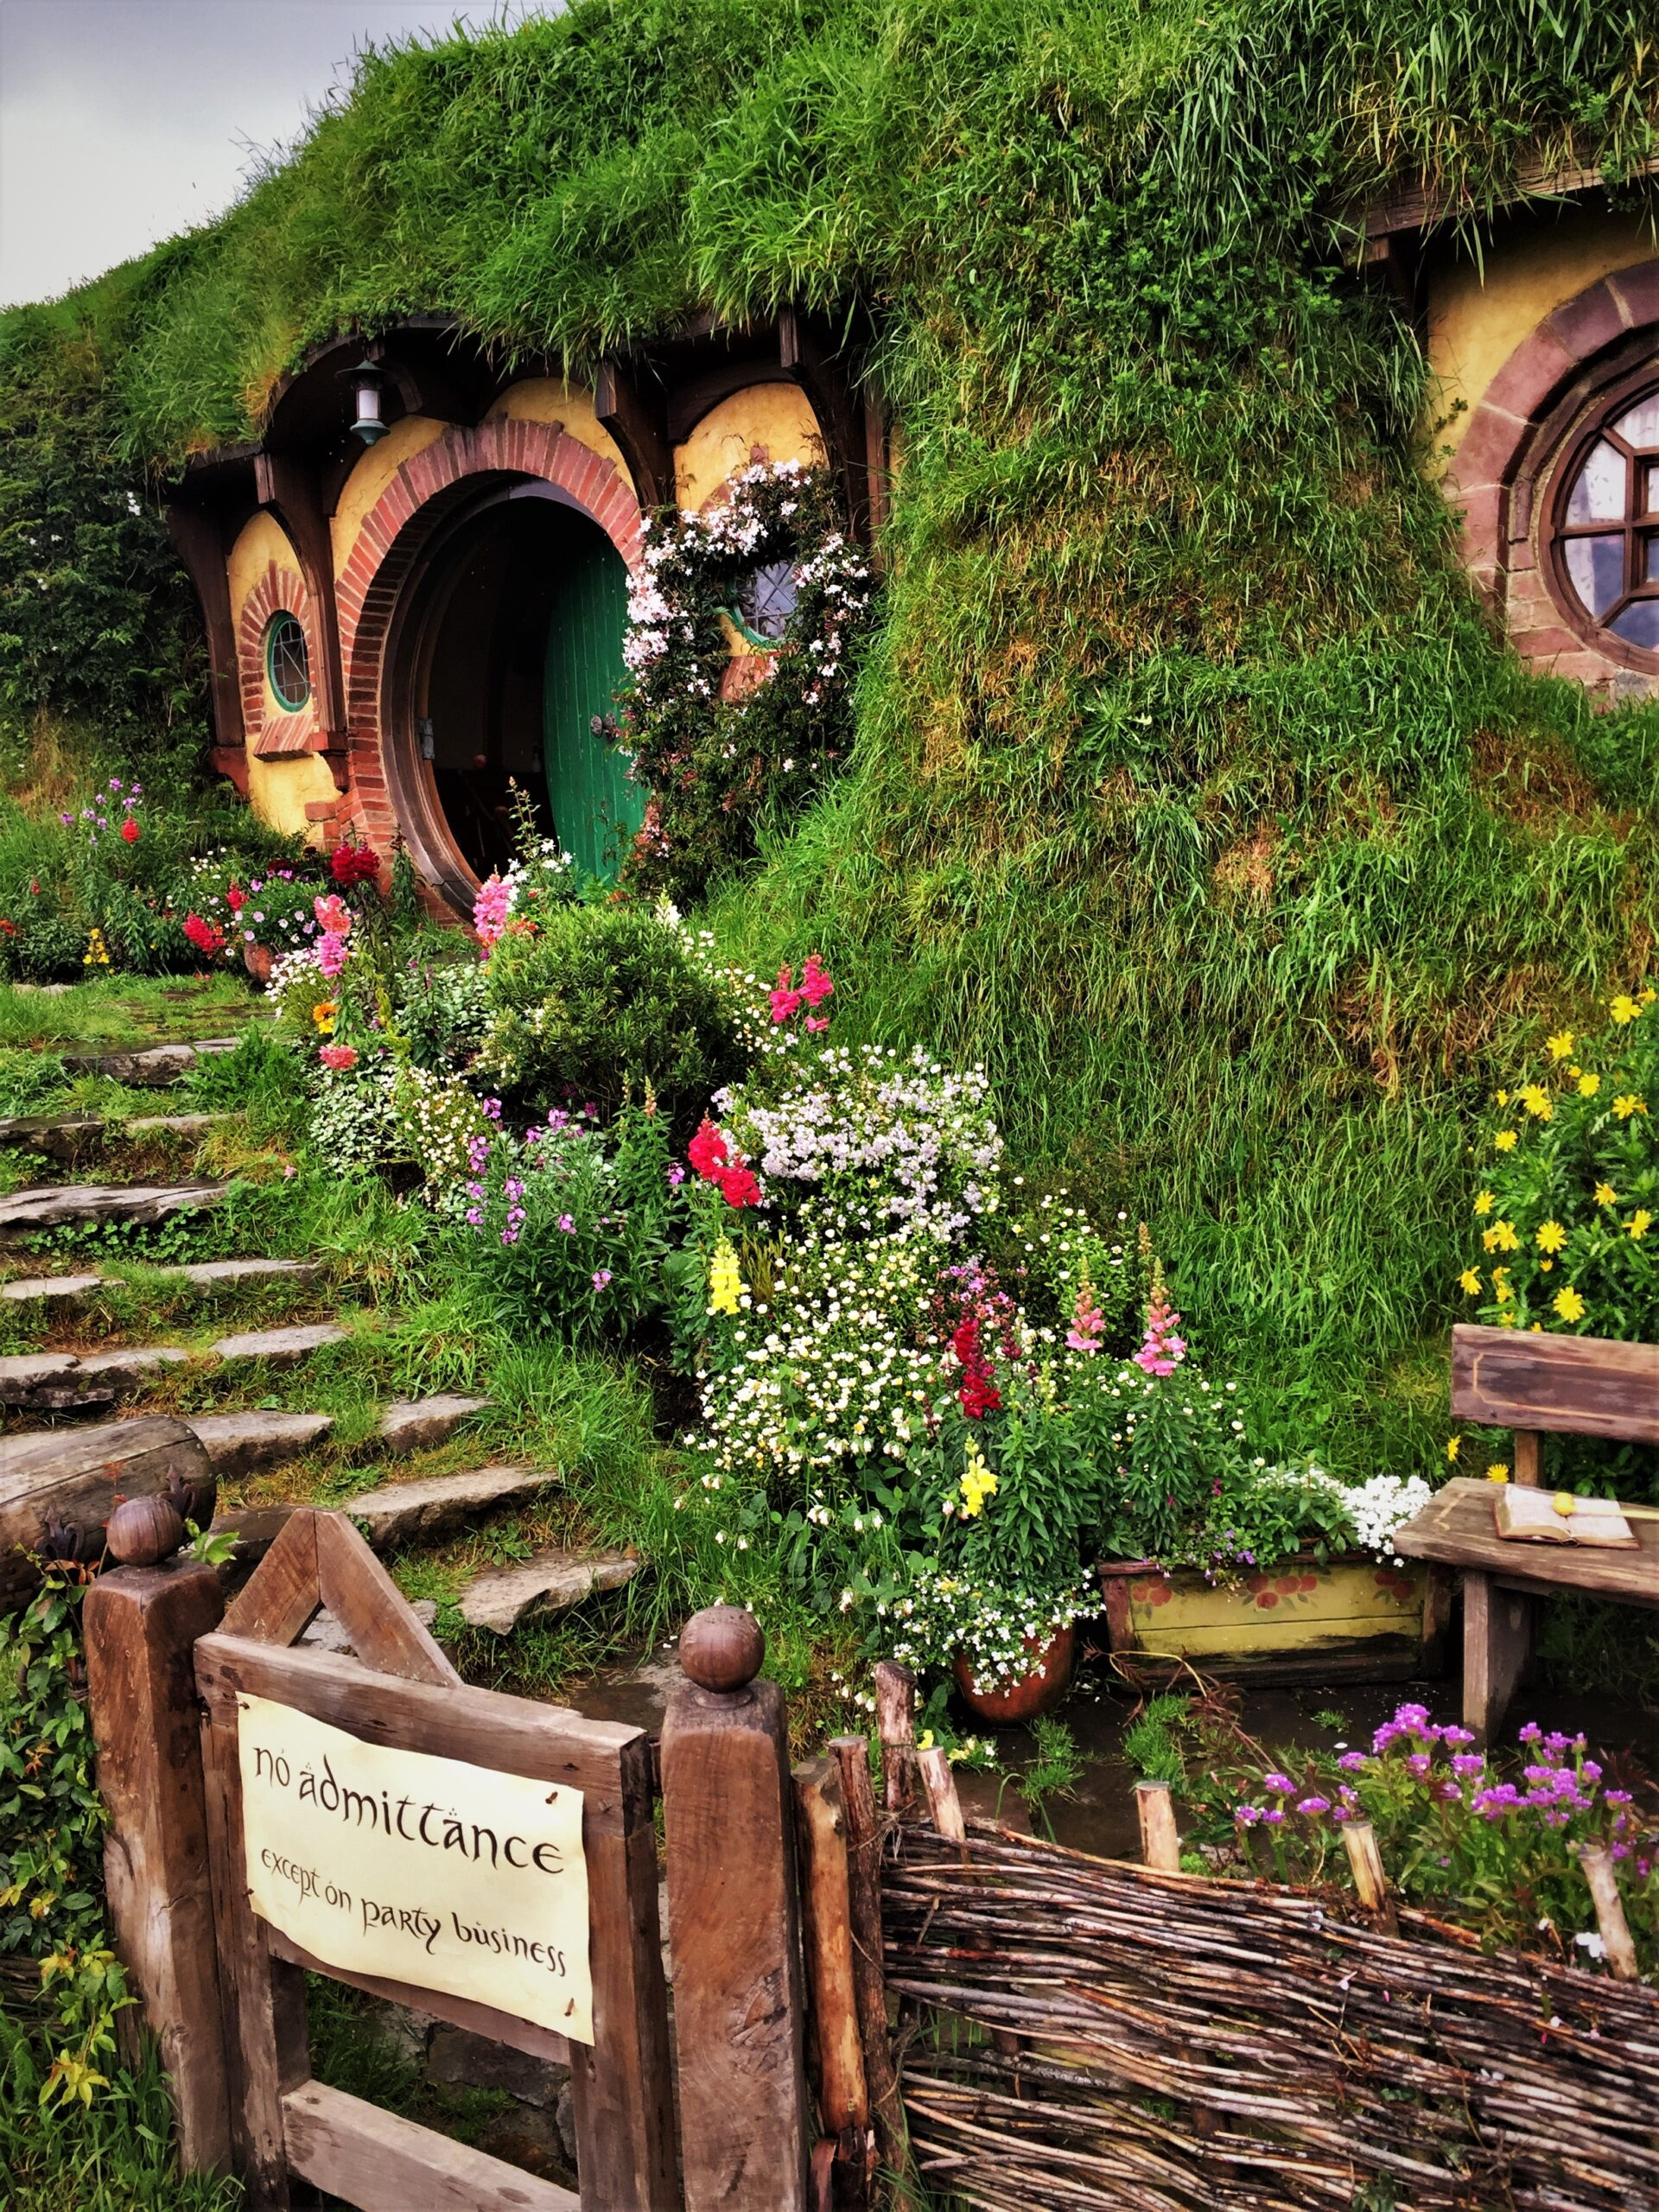 Bag End,Bilbo Baggins' residence